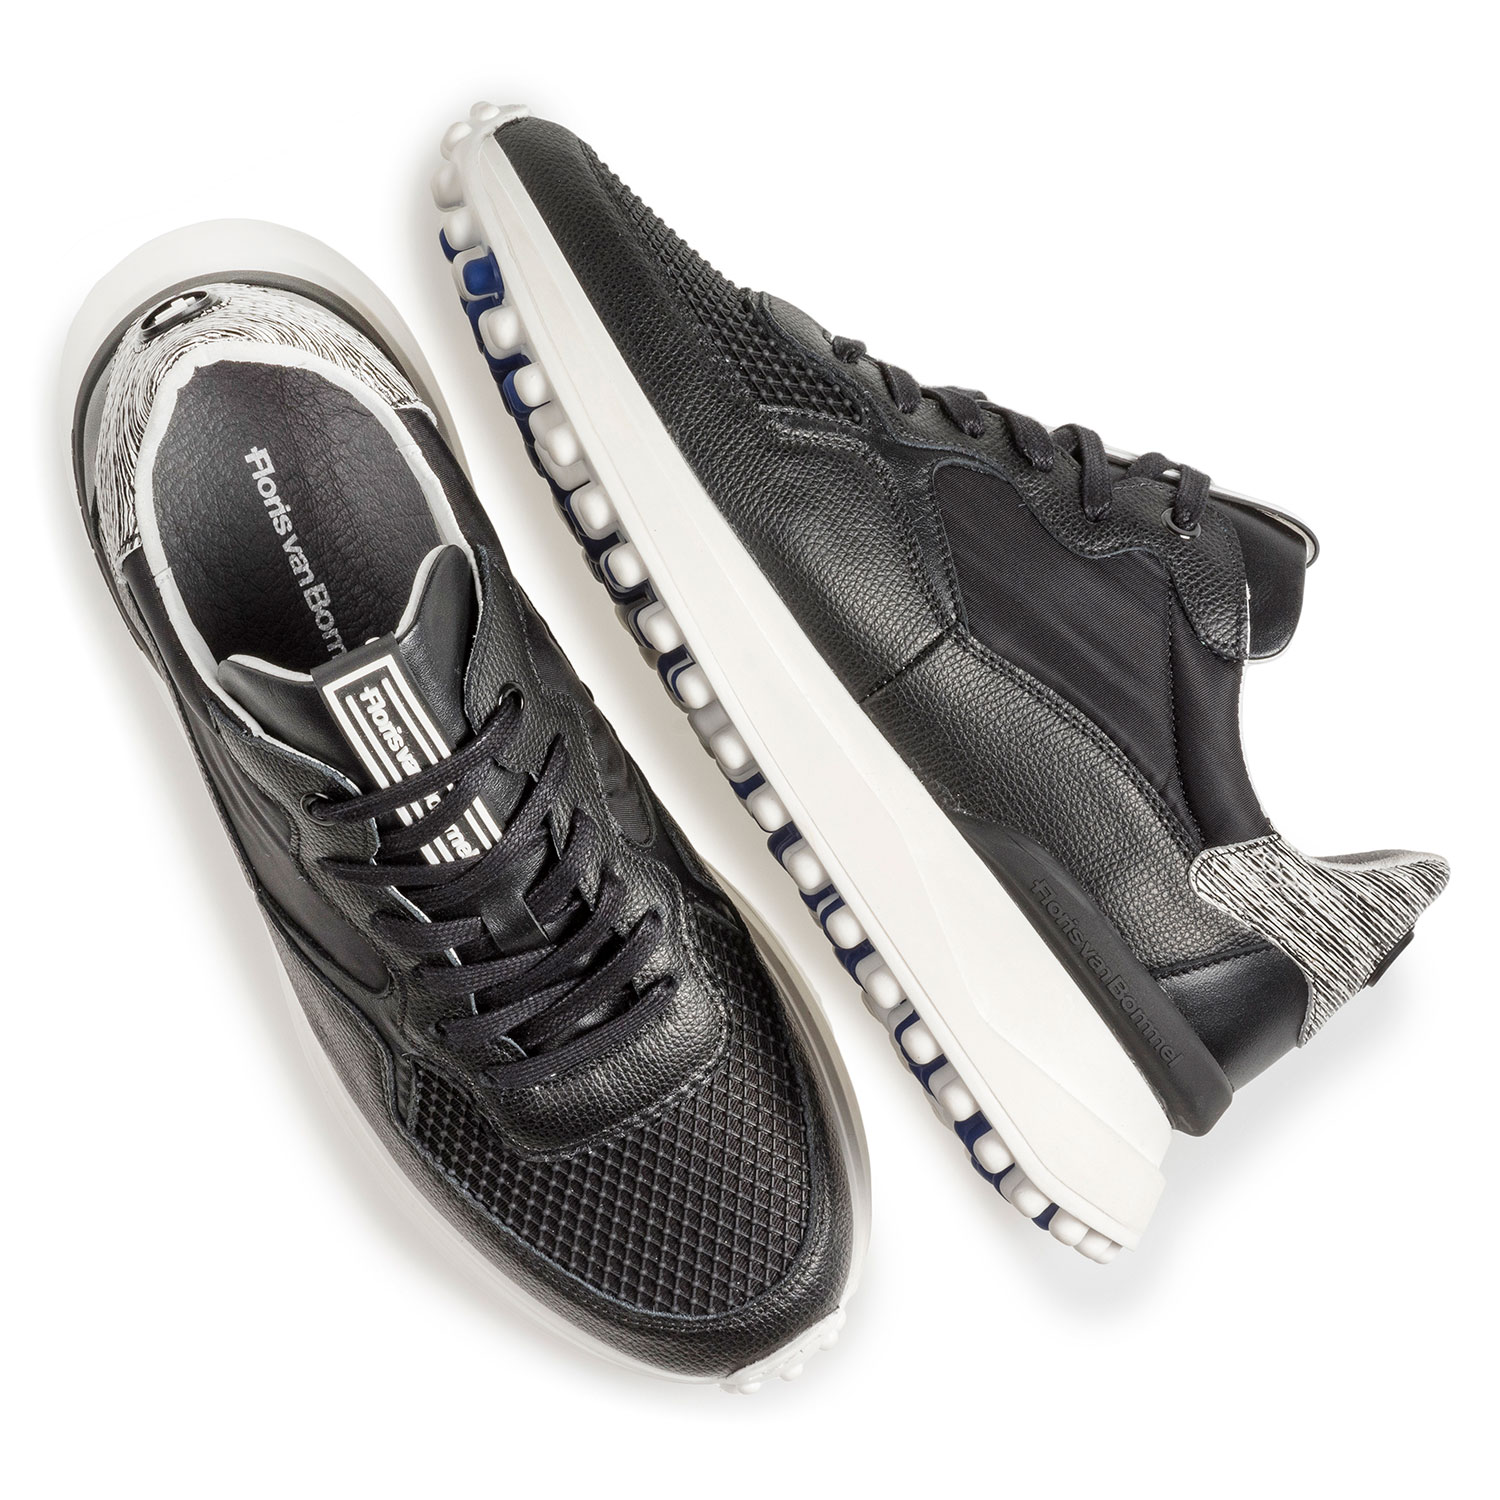 16301/13 - Black leather sneaker with print